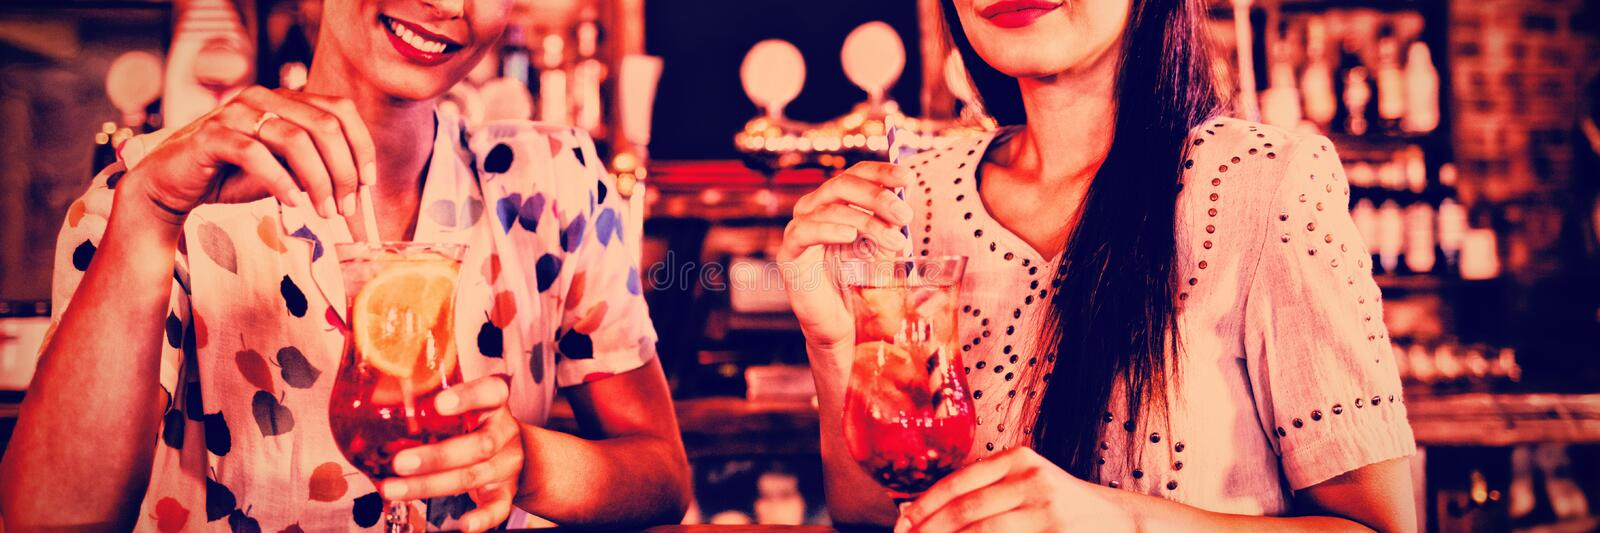 Portrait of two young women having cocktail drinks royalty free stock photo